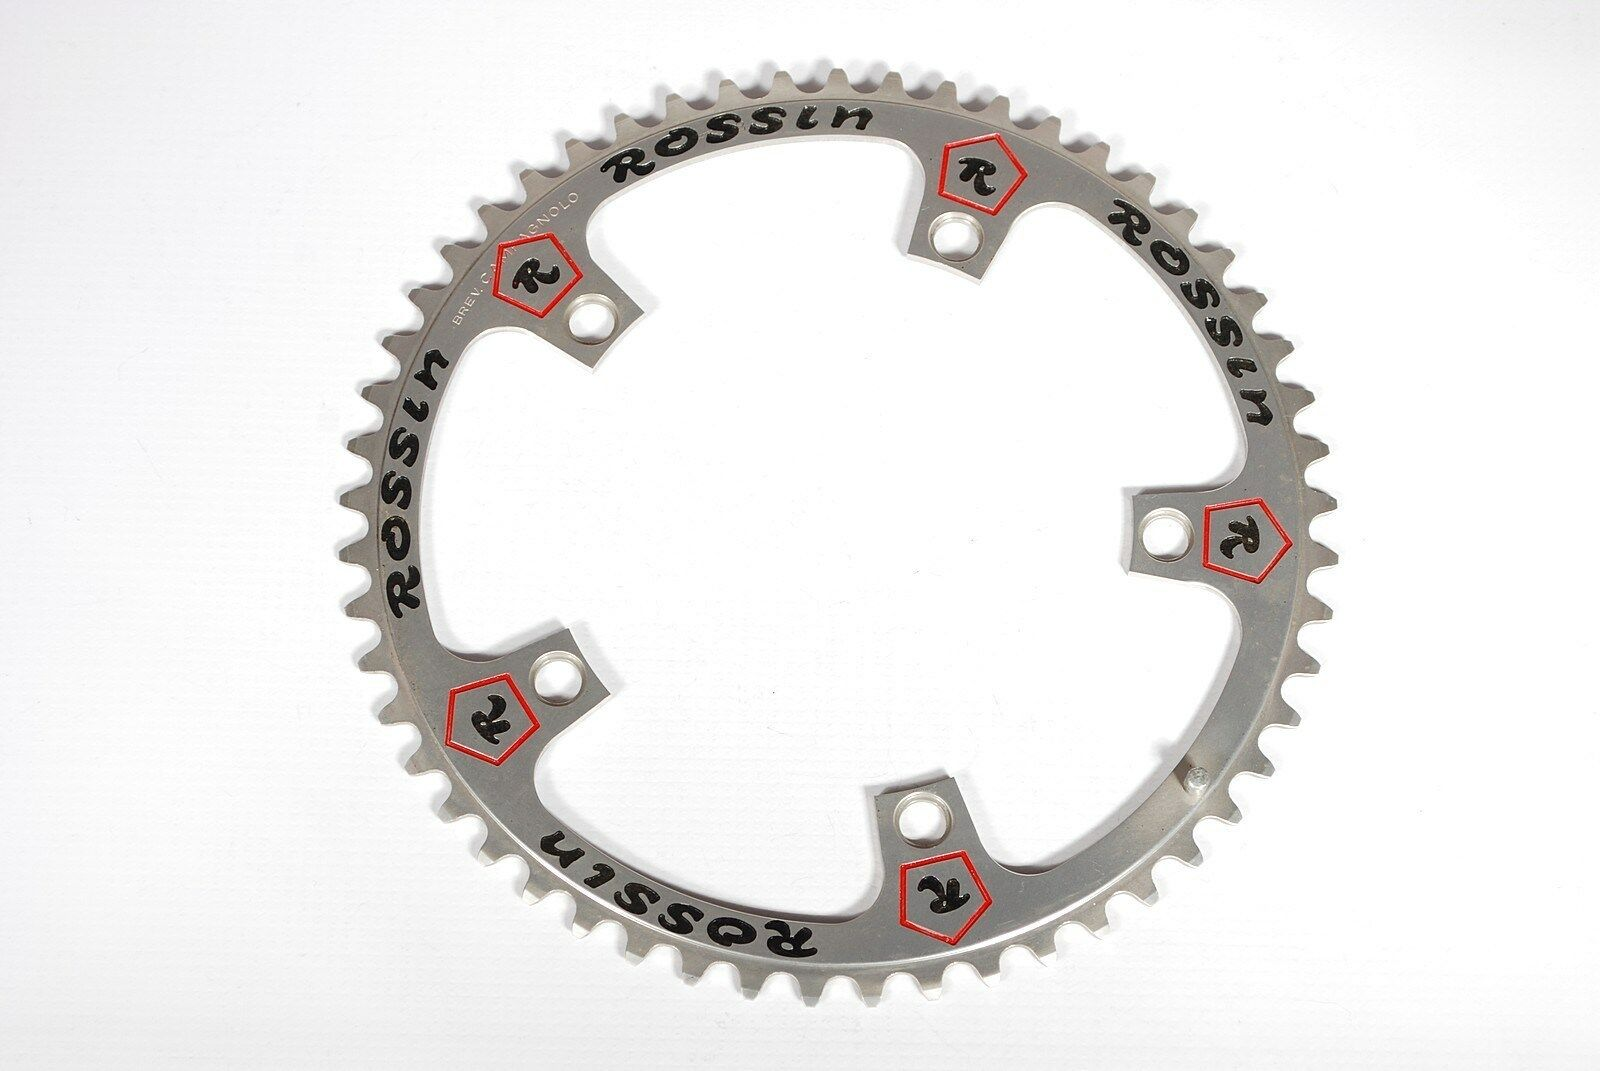 Vintage Campagnolo Record Super Record  53T 144BCD Pantographed Rossin Chainring  save 60% discount and fast shipping worldwide